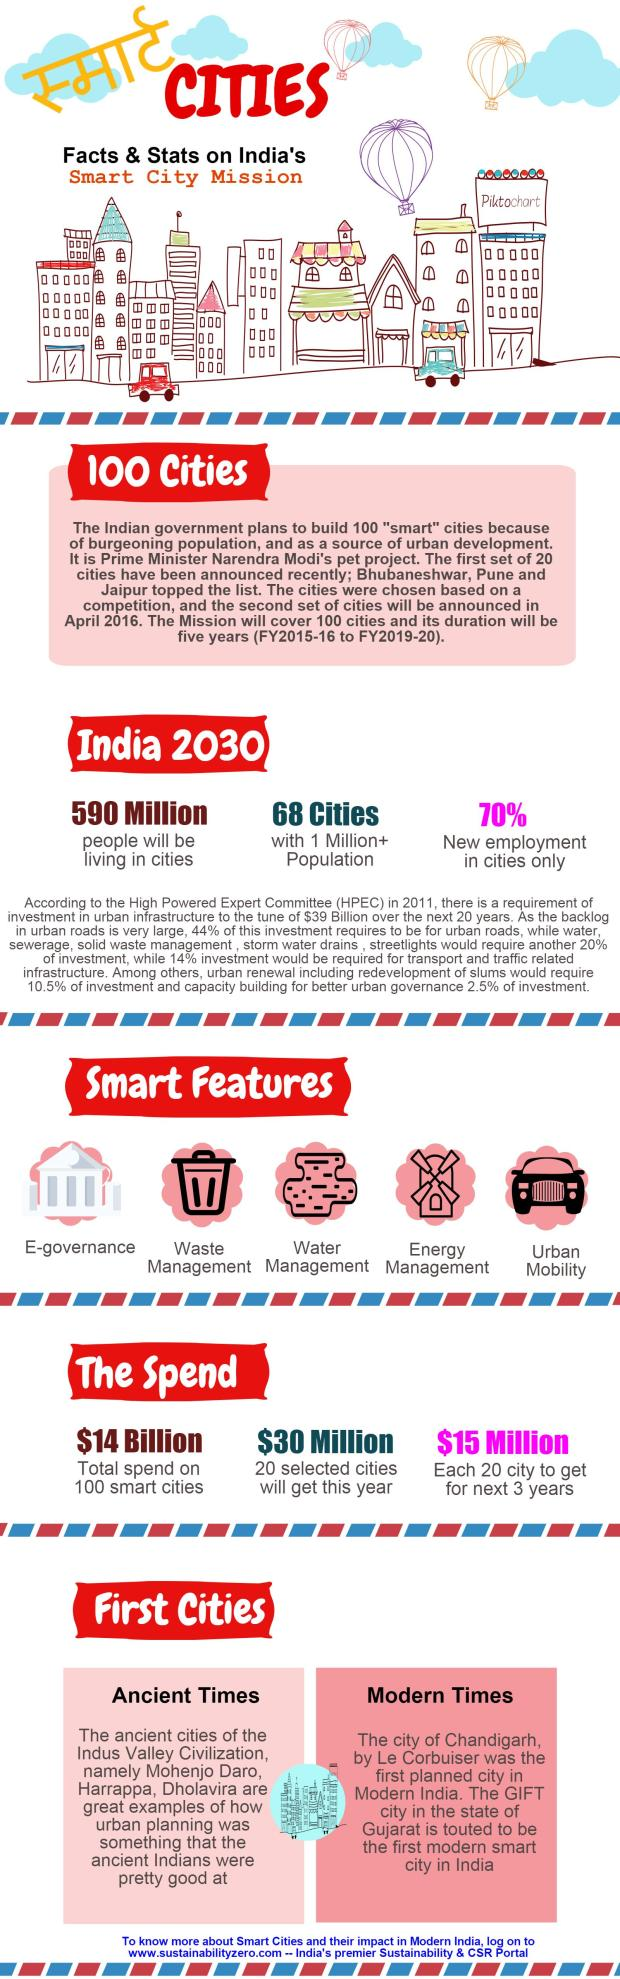 Smart City - Sustainabilityzero - infographic